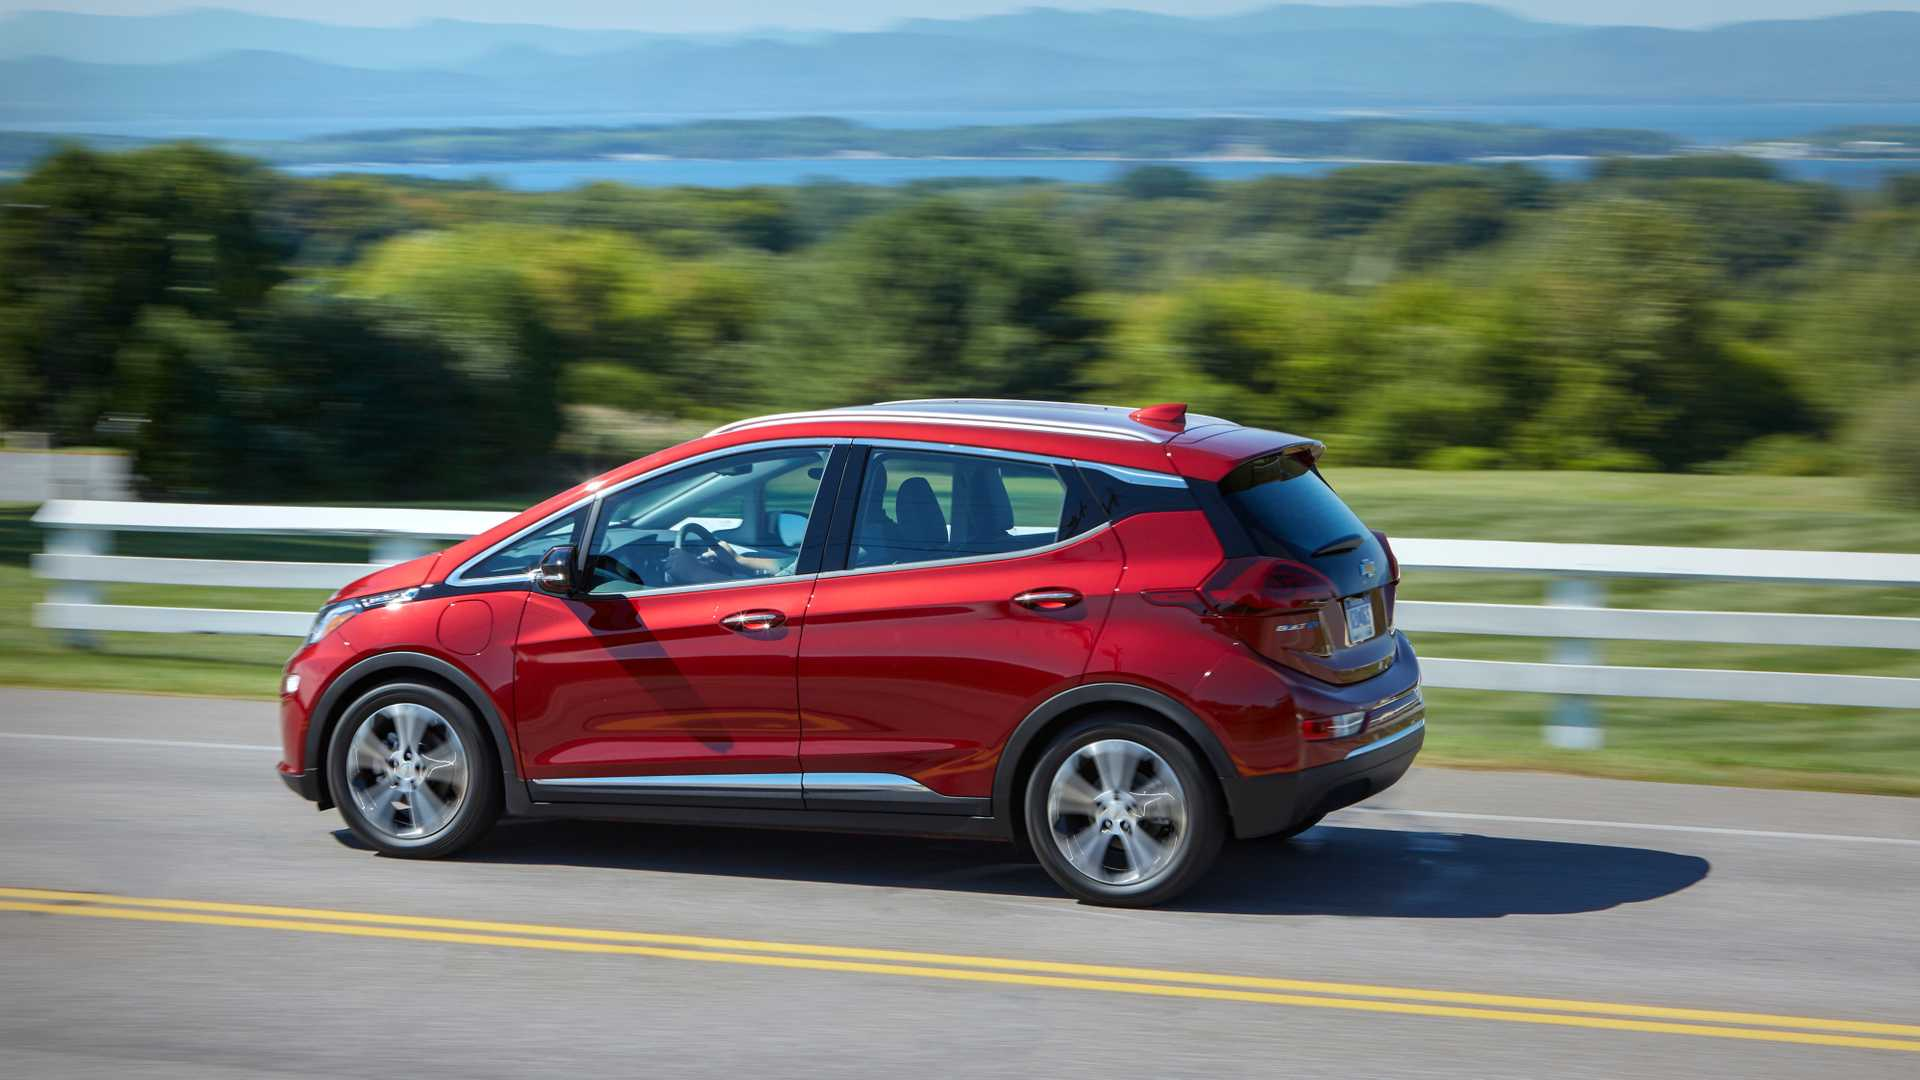 Official: 2020 Chevy Bolt EV Goes 259 Miles Per Charge